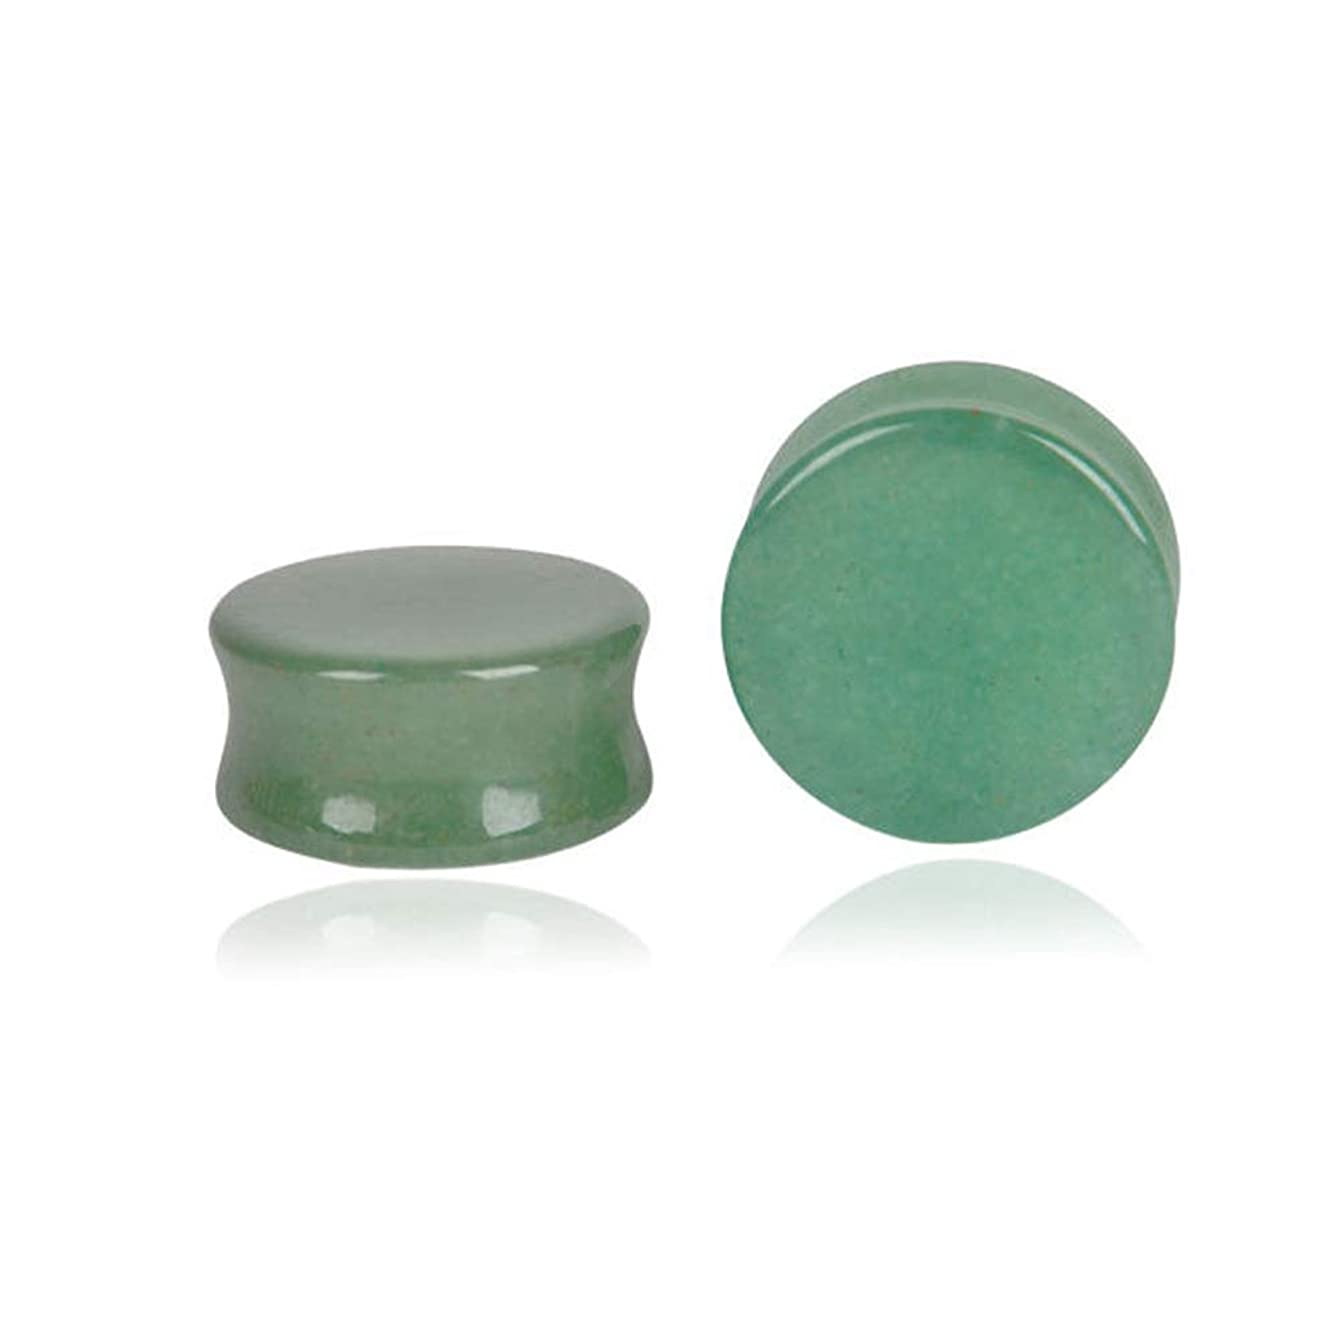 HQLA Green Jade Natural Stone Double Flared Flesh Plugs Tunnels Ear Gauges Stretcher Expander Kit 1 Pair